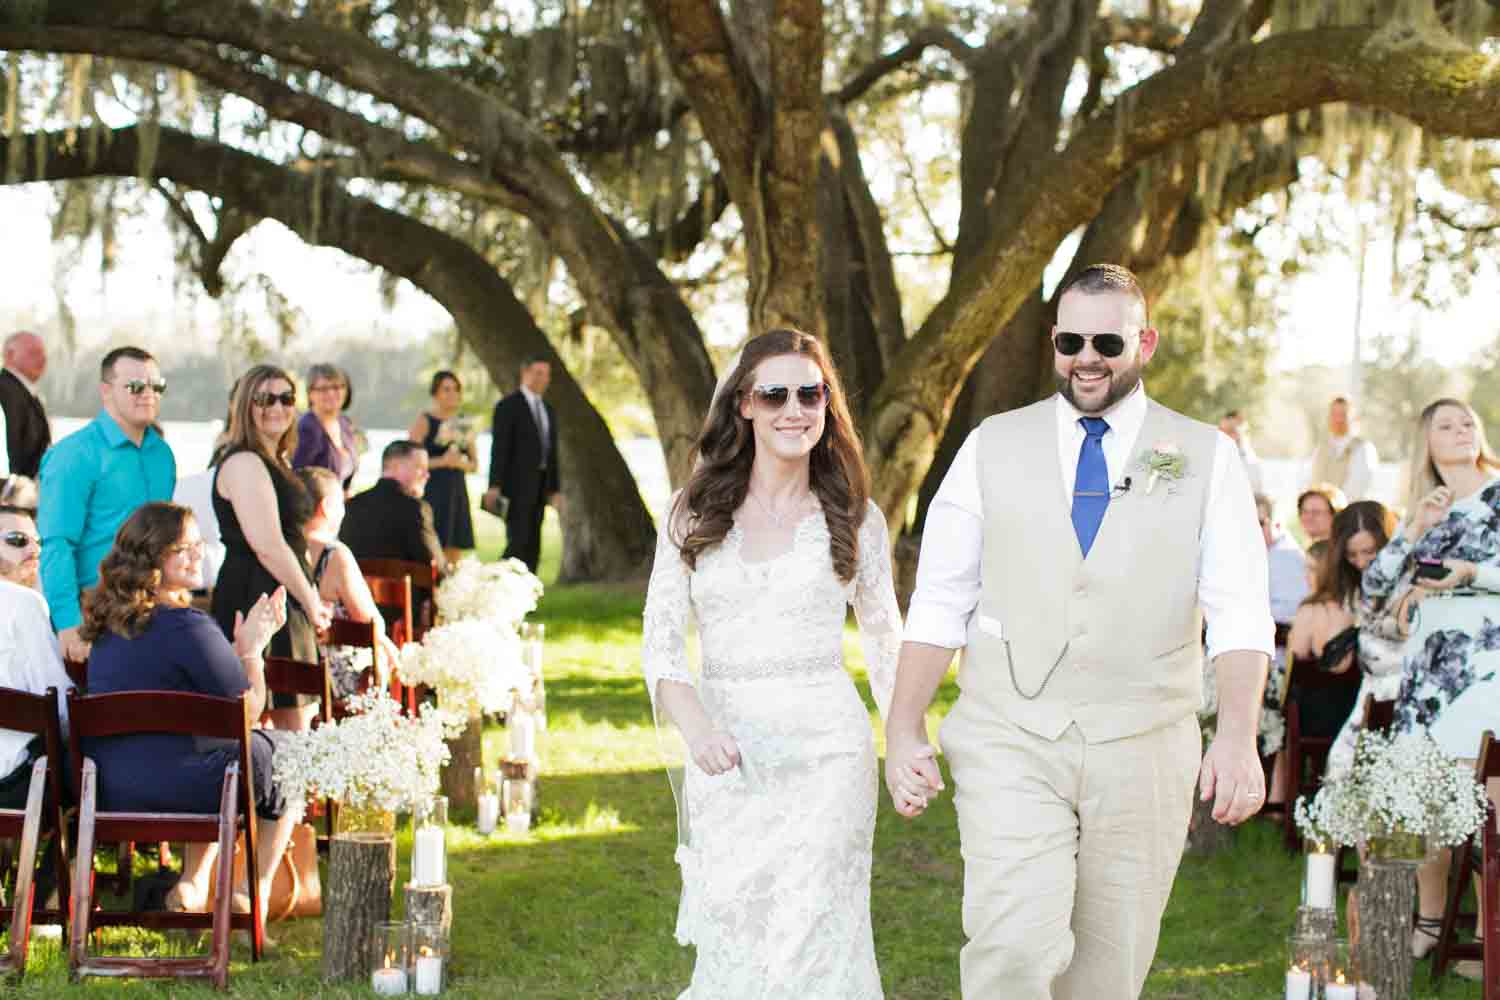 bride and groom walking with sunglasses after getting married